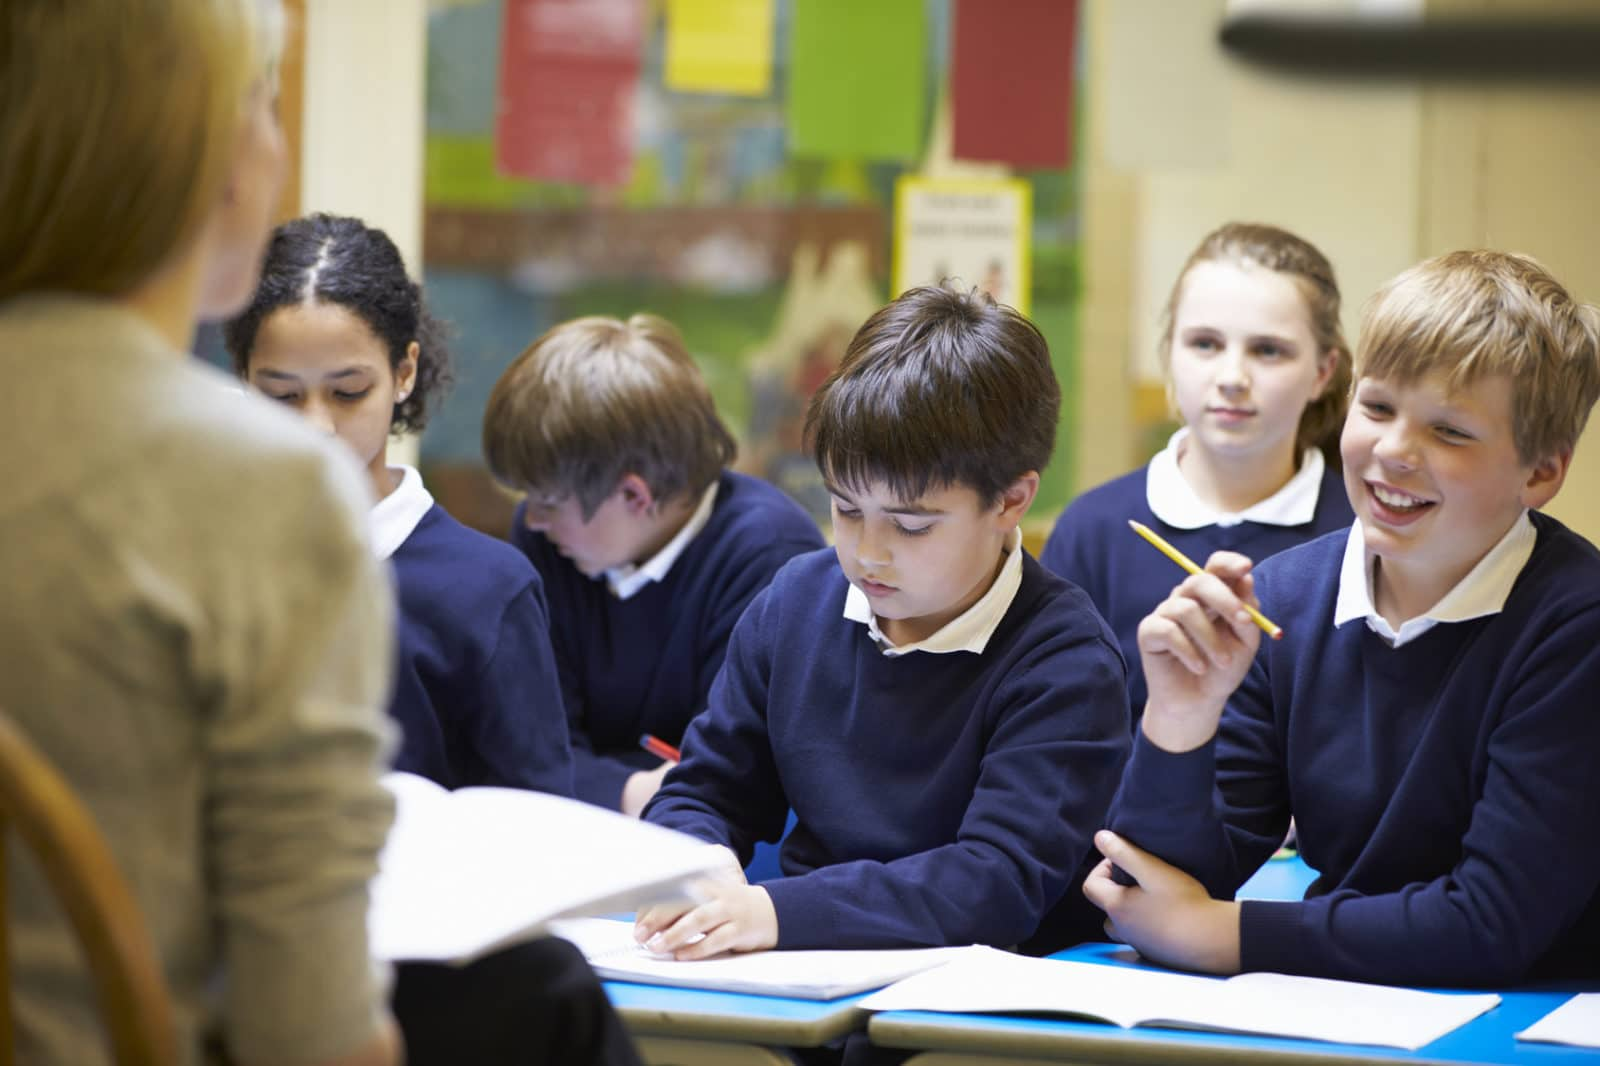 Helping Your Student with Dyslexia Learn: 5 Strategies to